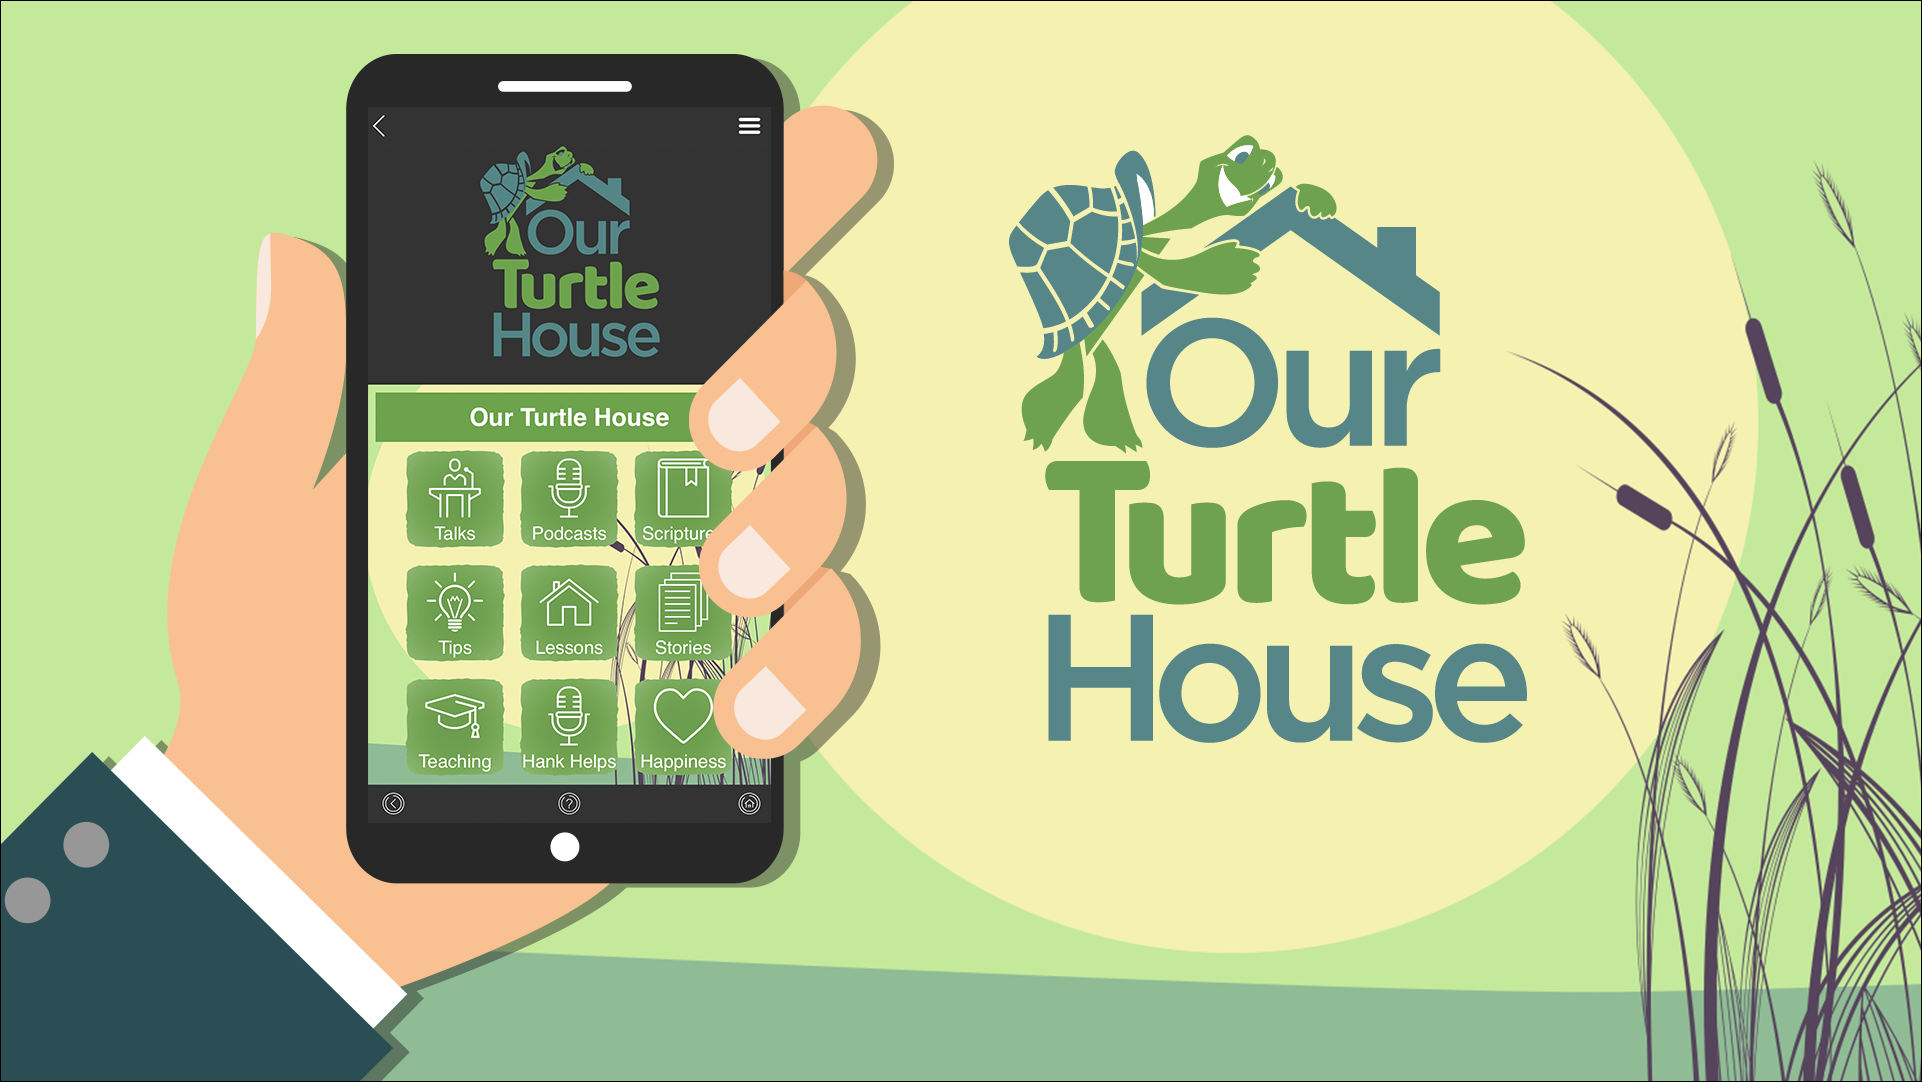 Our Turtle House Mobile App